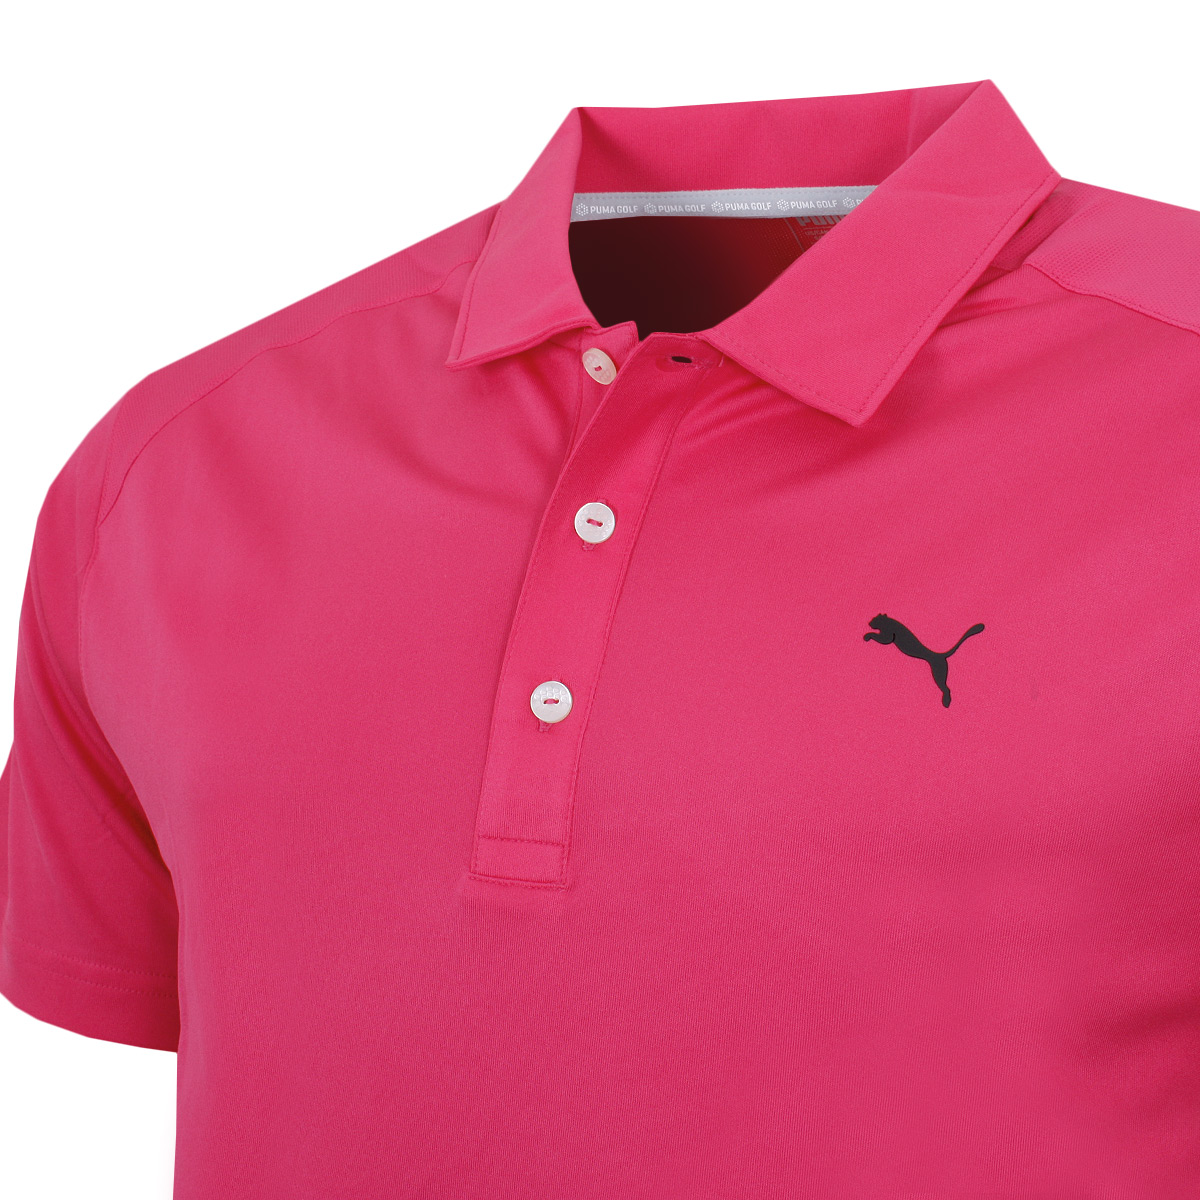 Puma-Golf-Mens-Essential-Pounce-Polo-Shirt-DryCell-Lightweight-Tech-43-OFF-RRP thumbnail 7